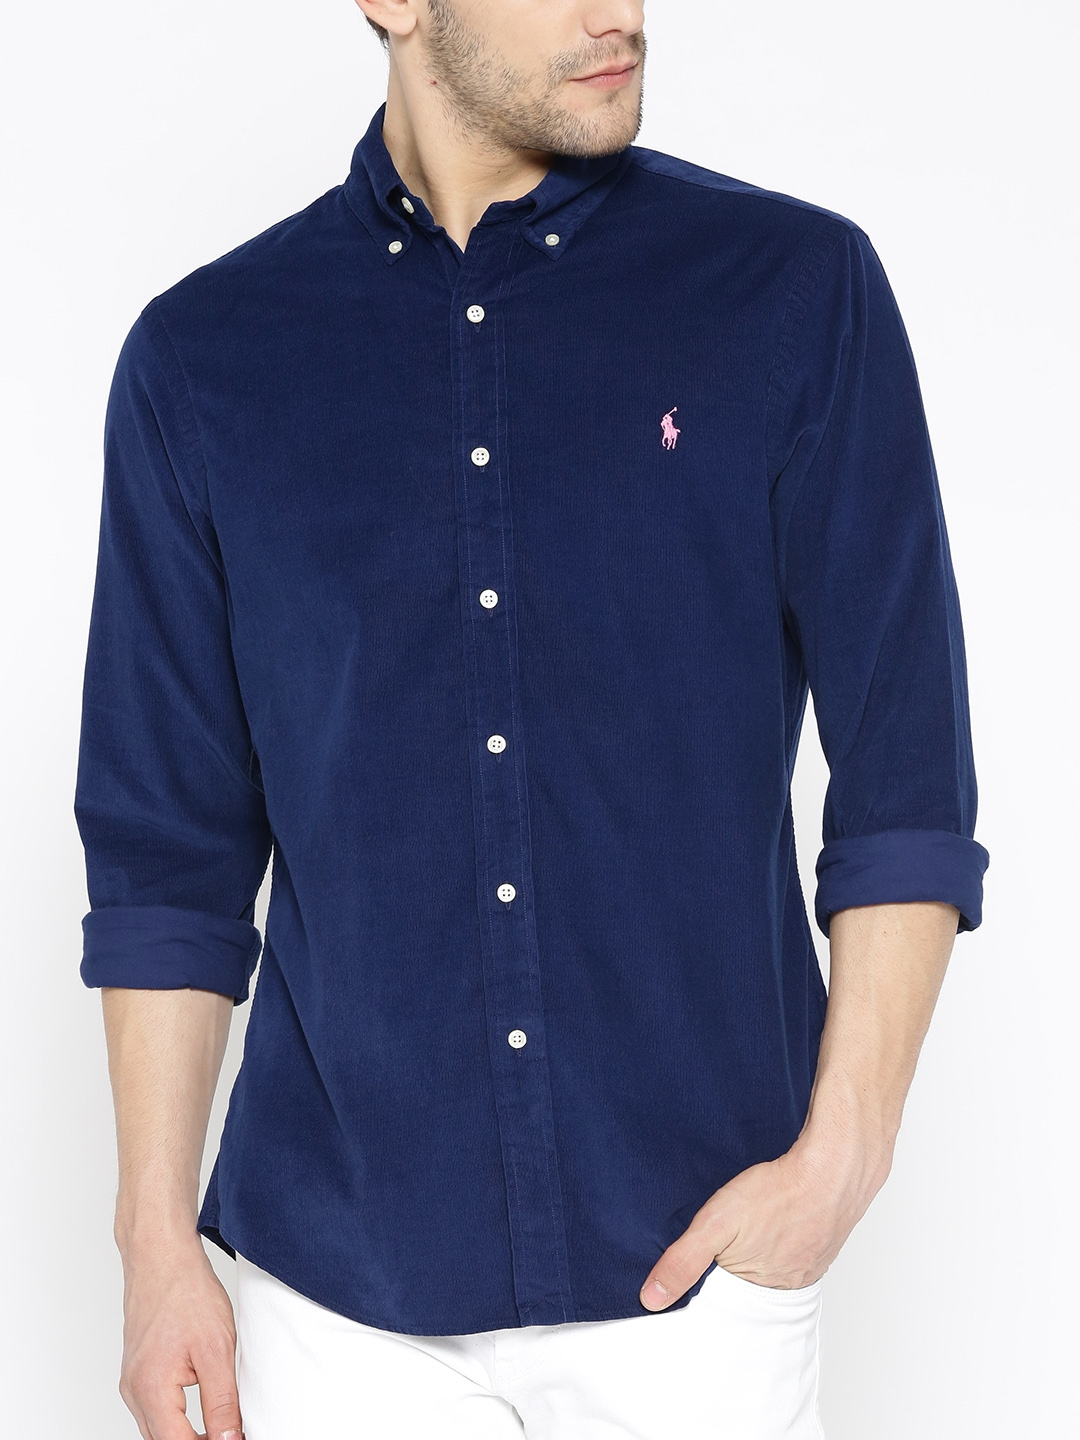 125c1f29a64a Buy Polo Ralph Lauren Navy Blue Corduroy Slim Fit Solid Casual Shirt ...